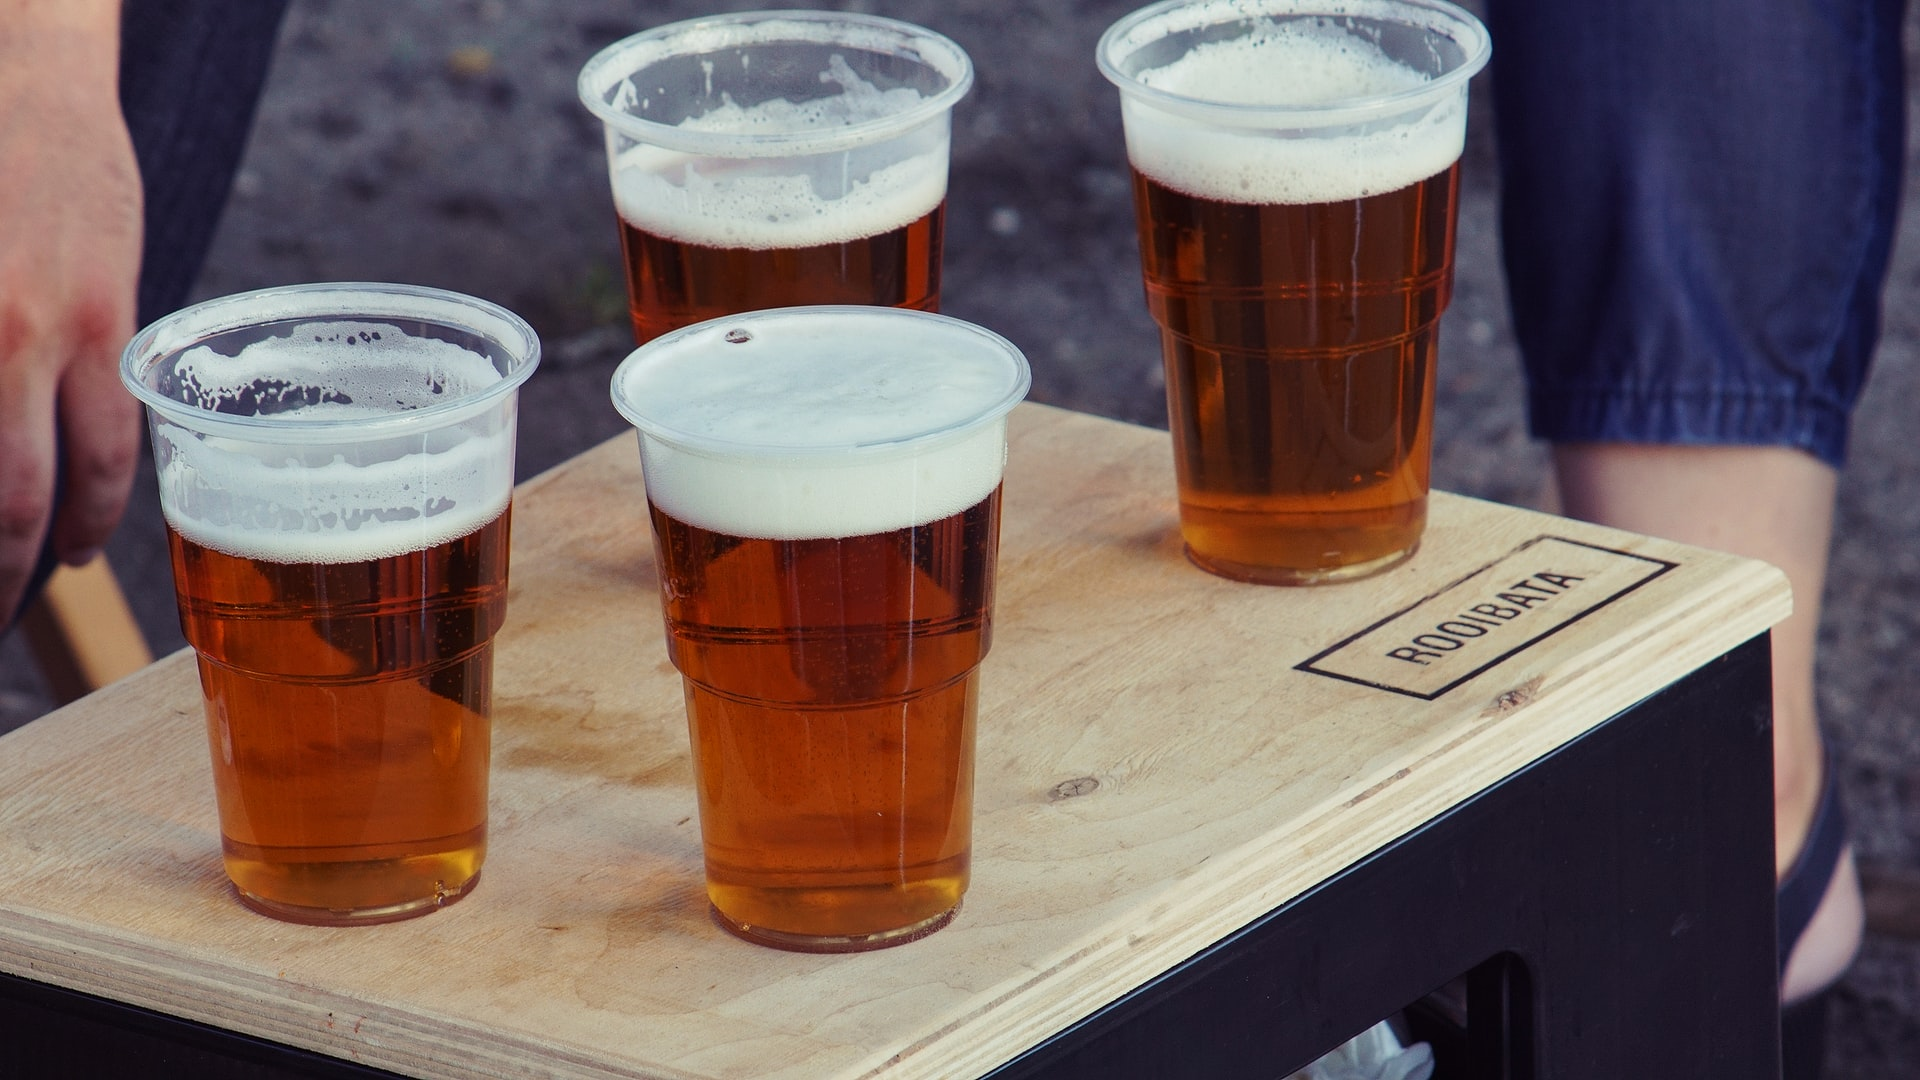 Photo of tray with beer